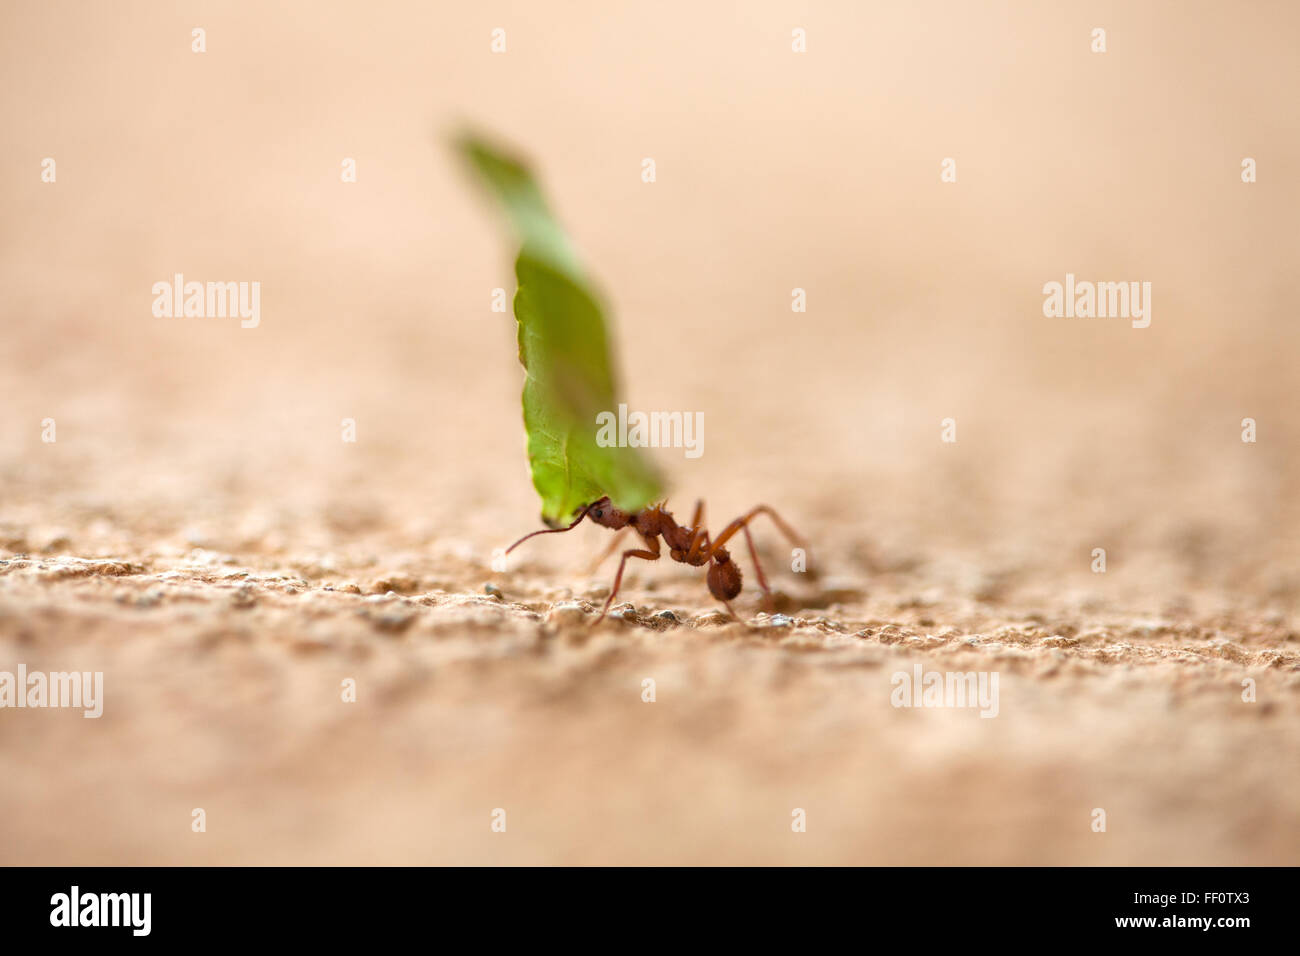 A close-up of a single leaf cutter ant carrying a piece of green leaf across a textured surface. Stock Photo